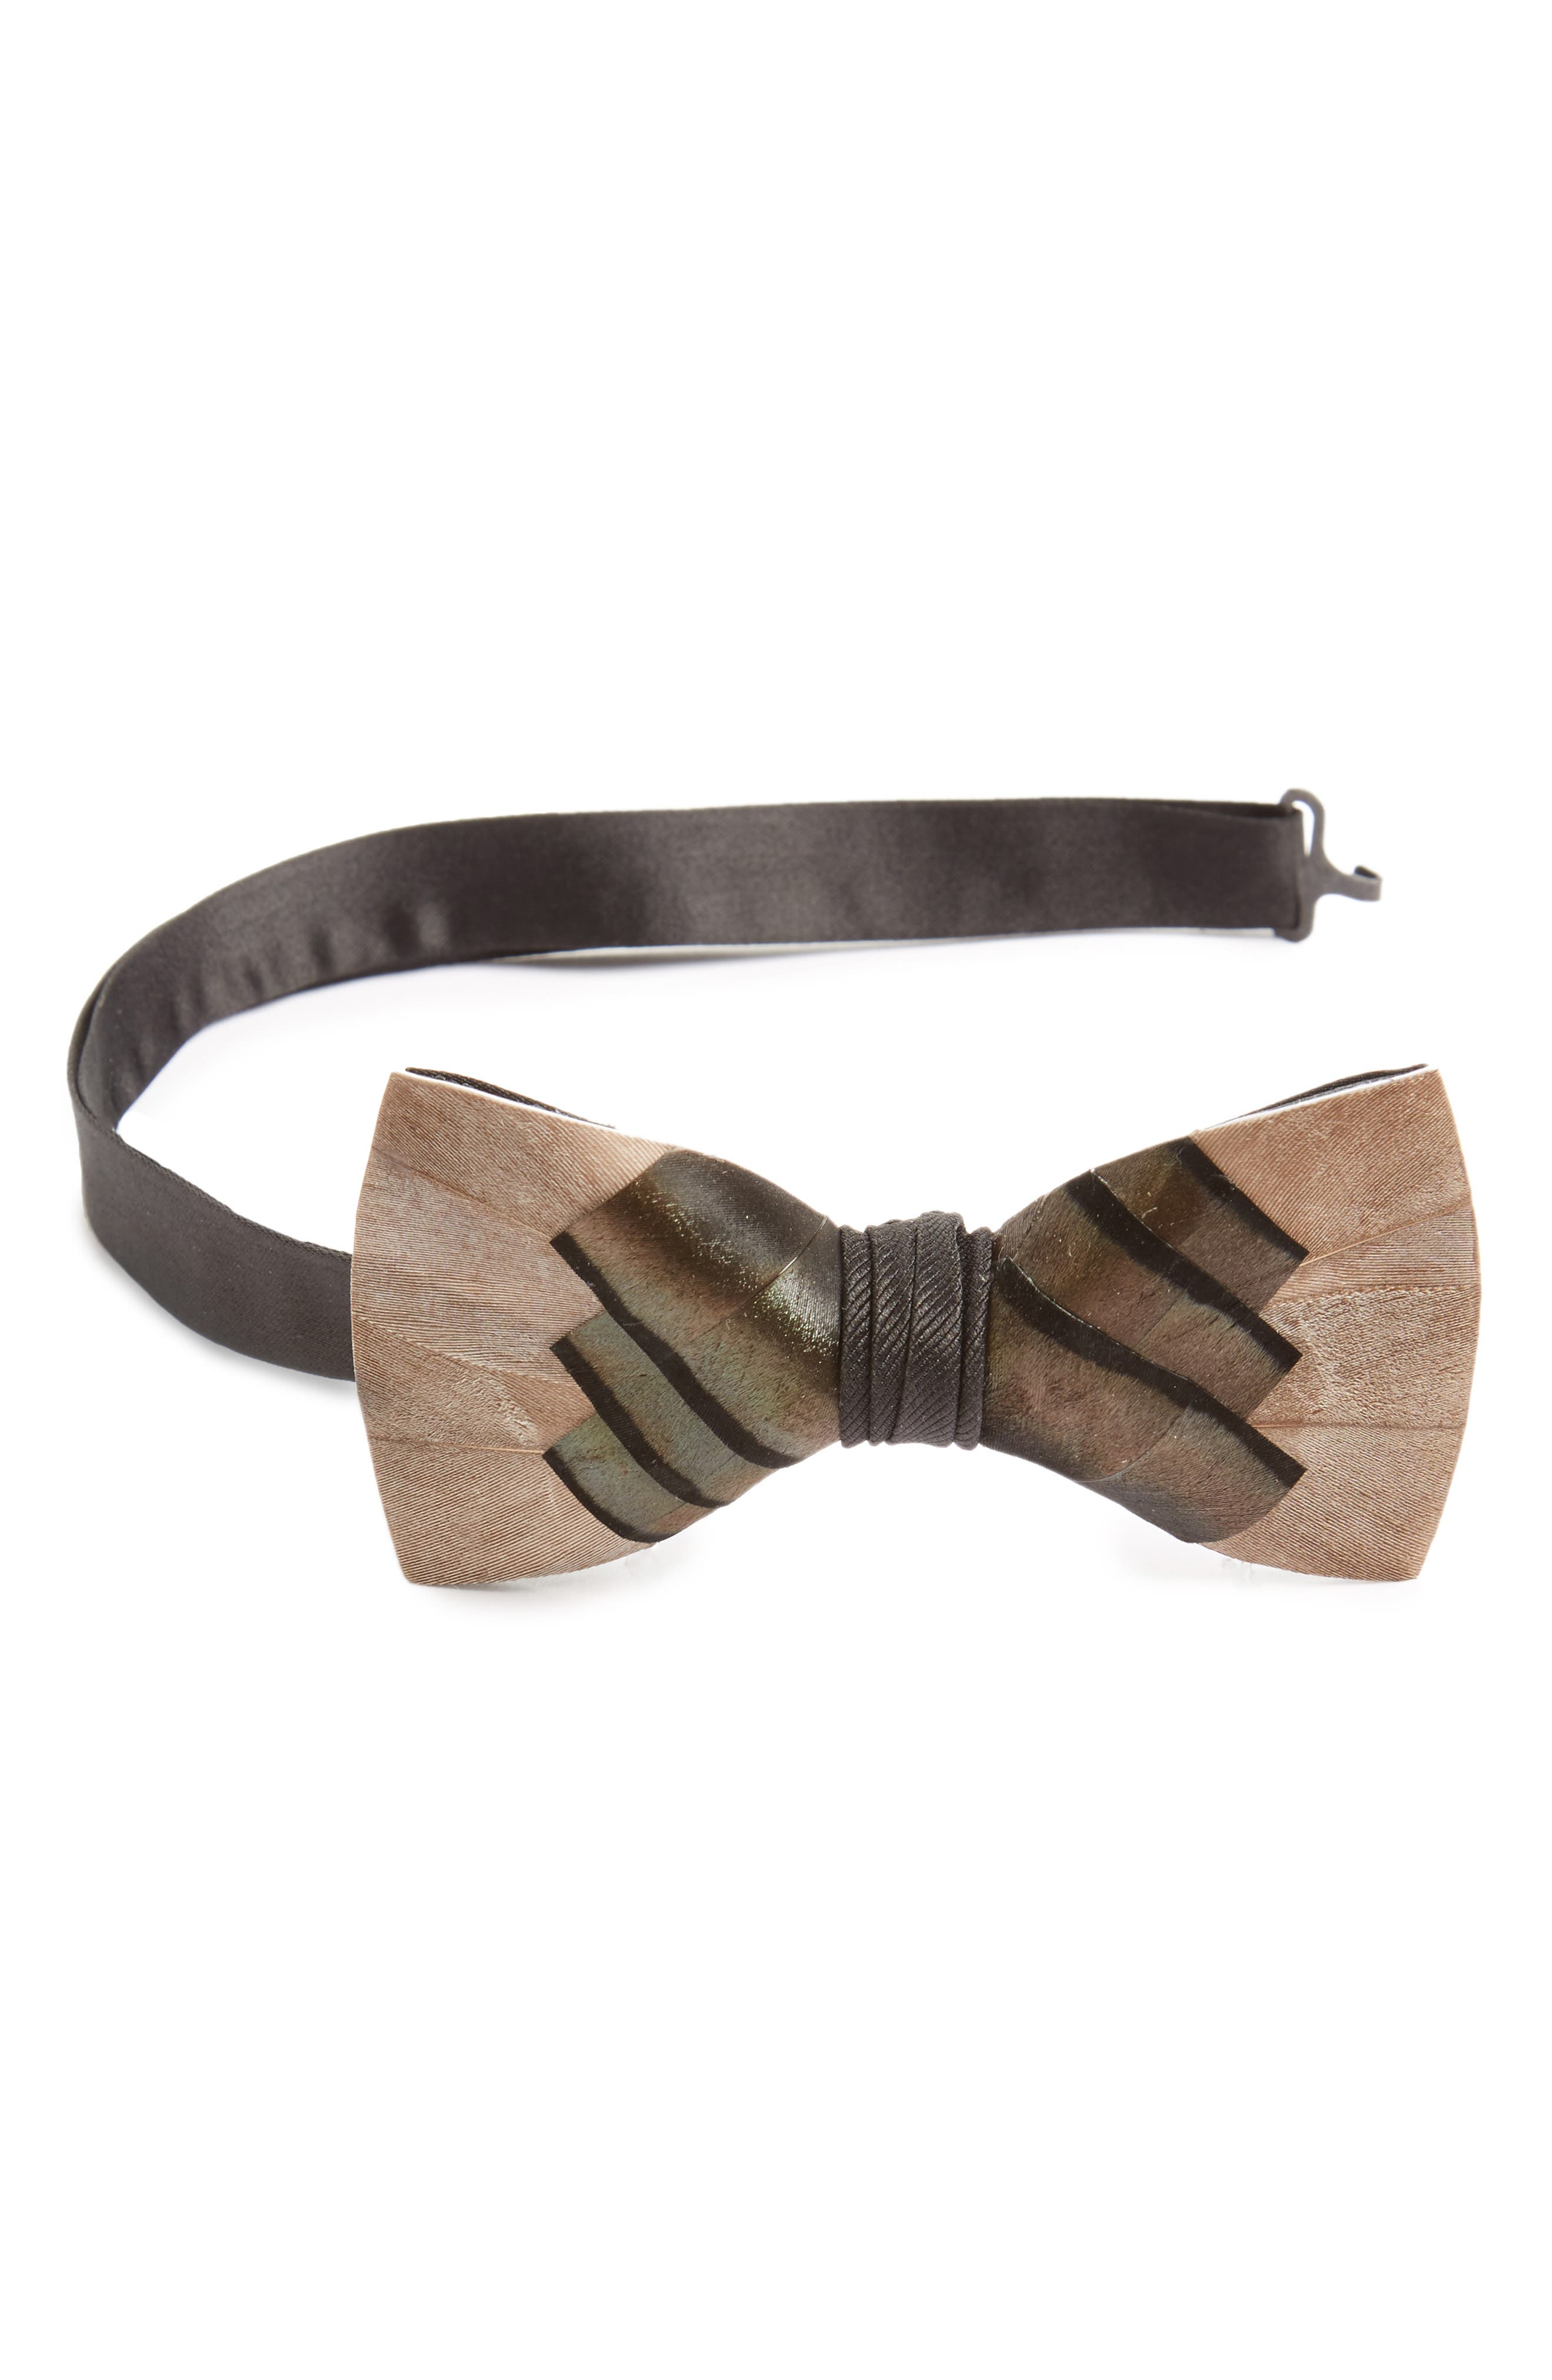 Pawley Feather Bow Tie,                             Main thumbnail 1, color,                             020